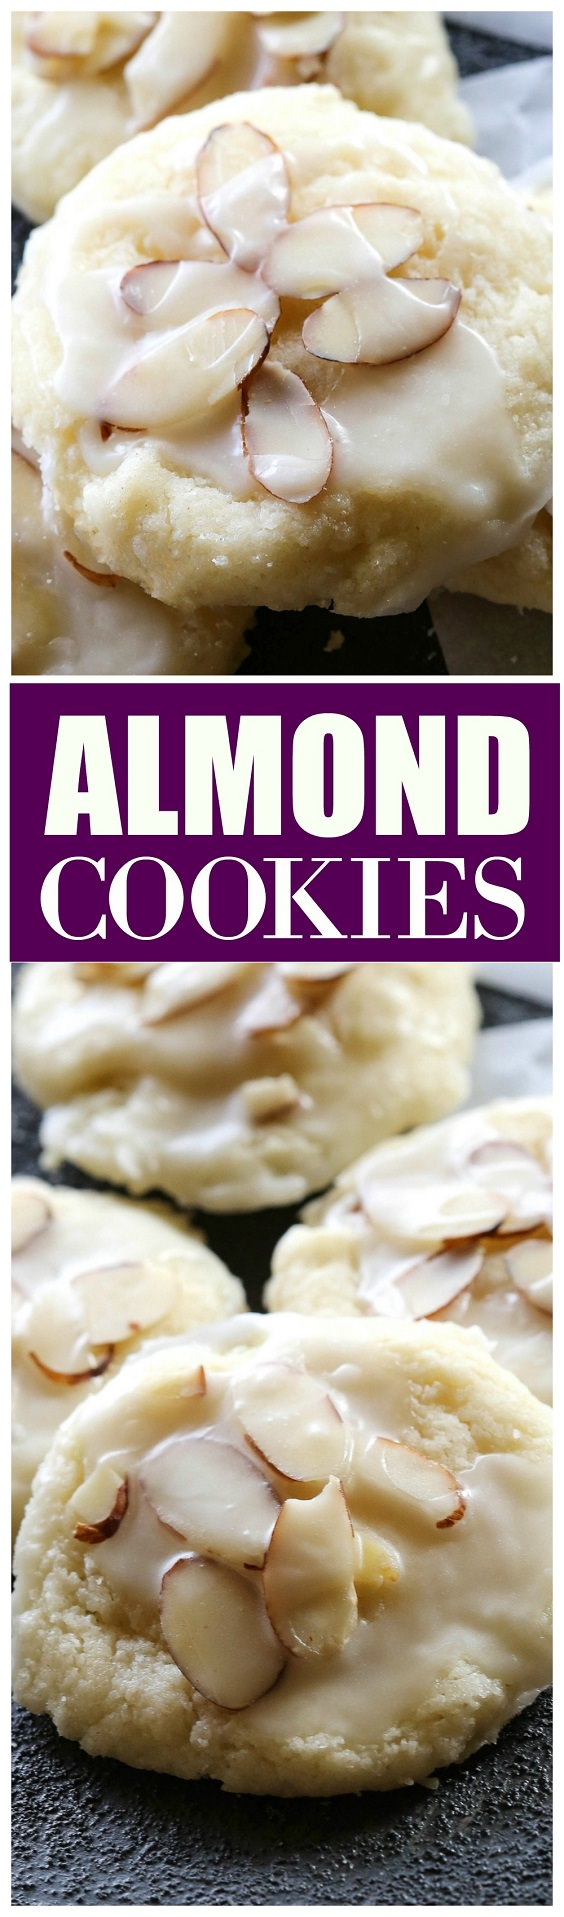 These Almond Cookies have a sweet almond glaze, so addicting that they melt in your mouth. Check out the recipe!